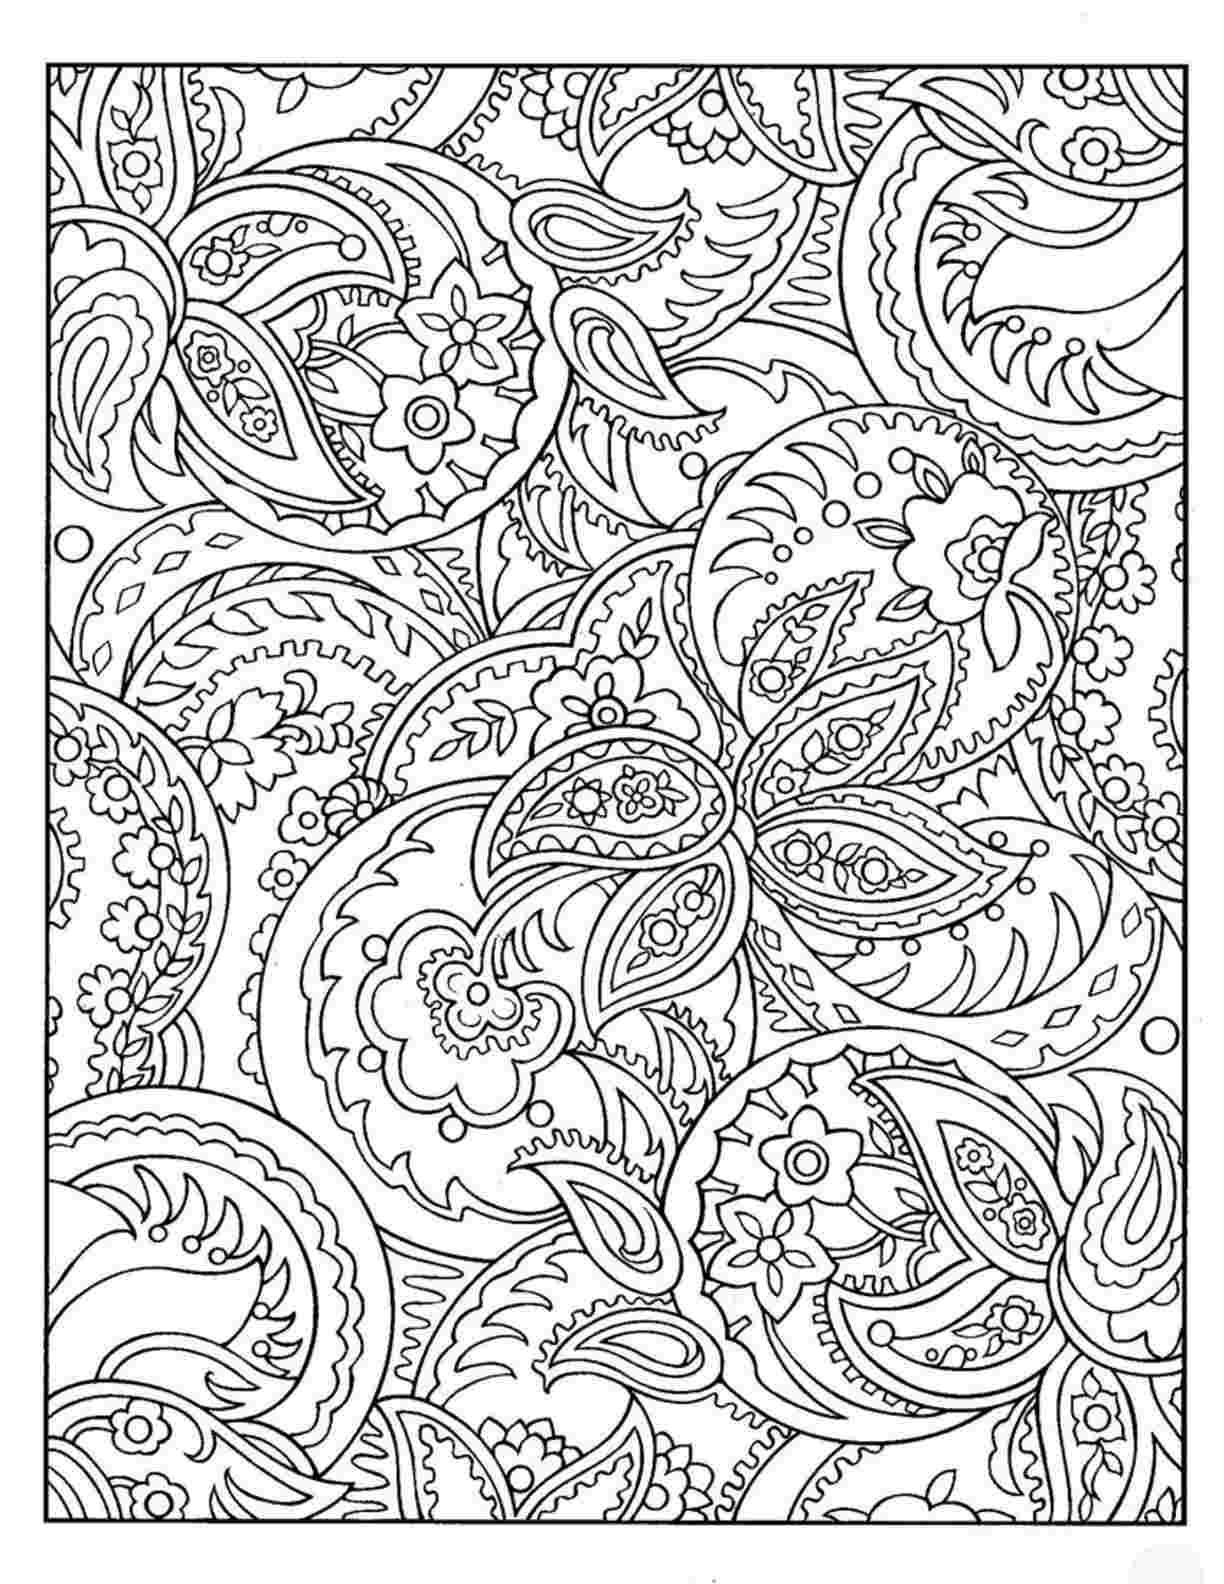 Pin On Colouring Pages I D Like To Colour